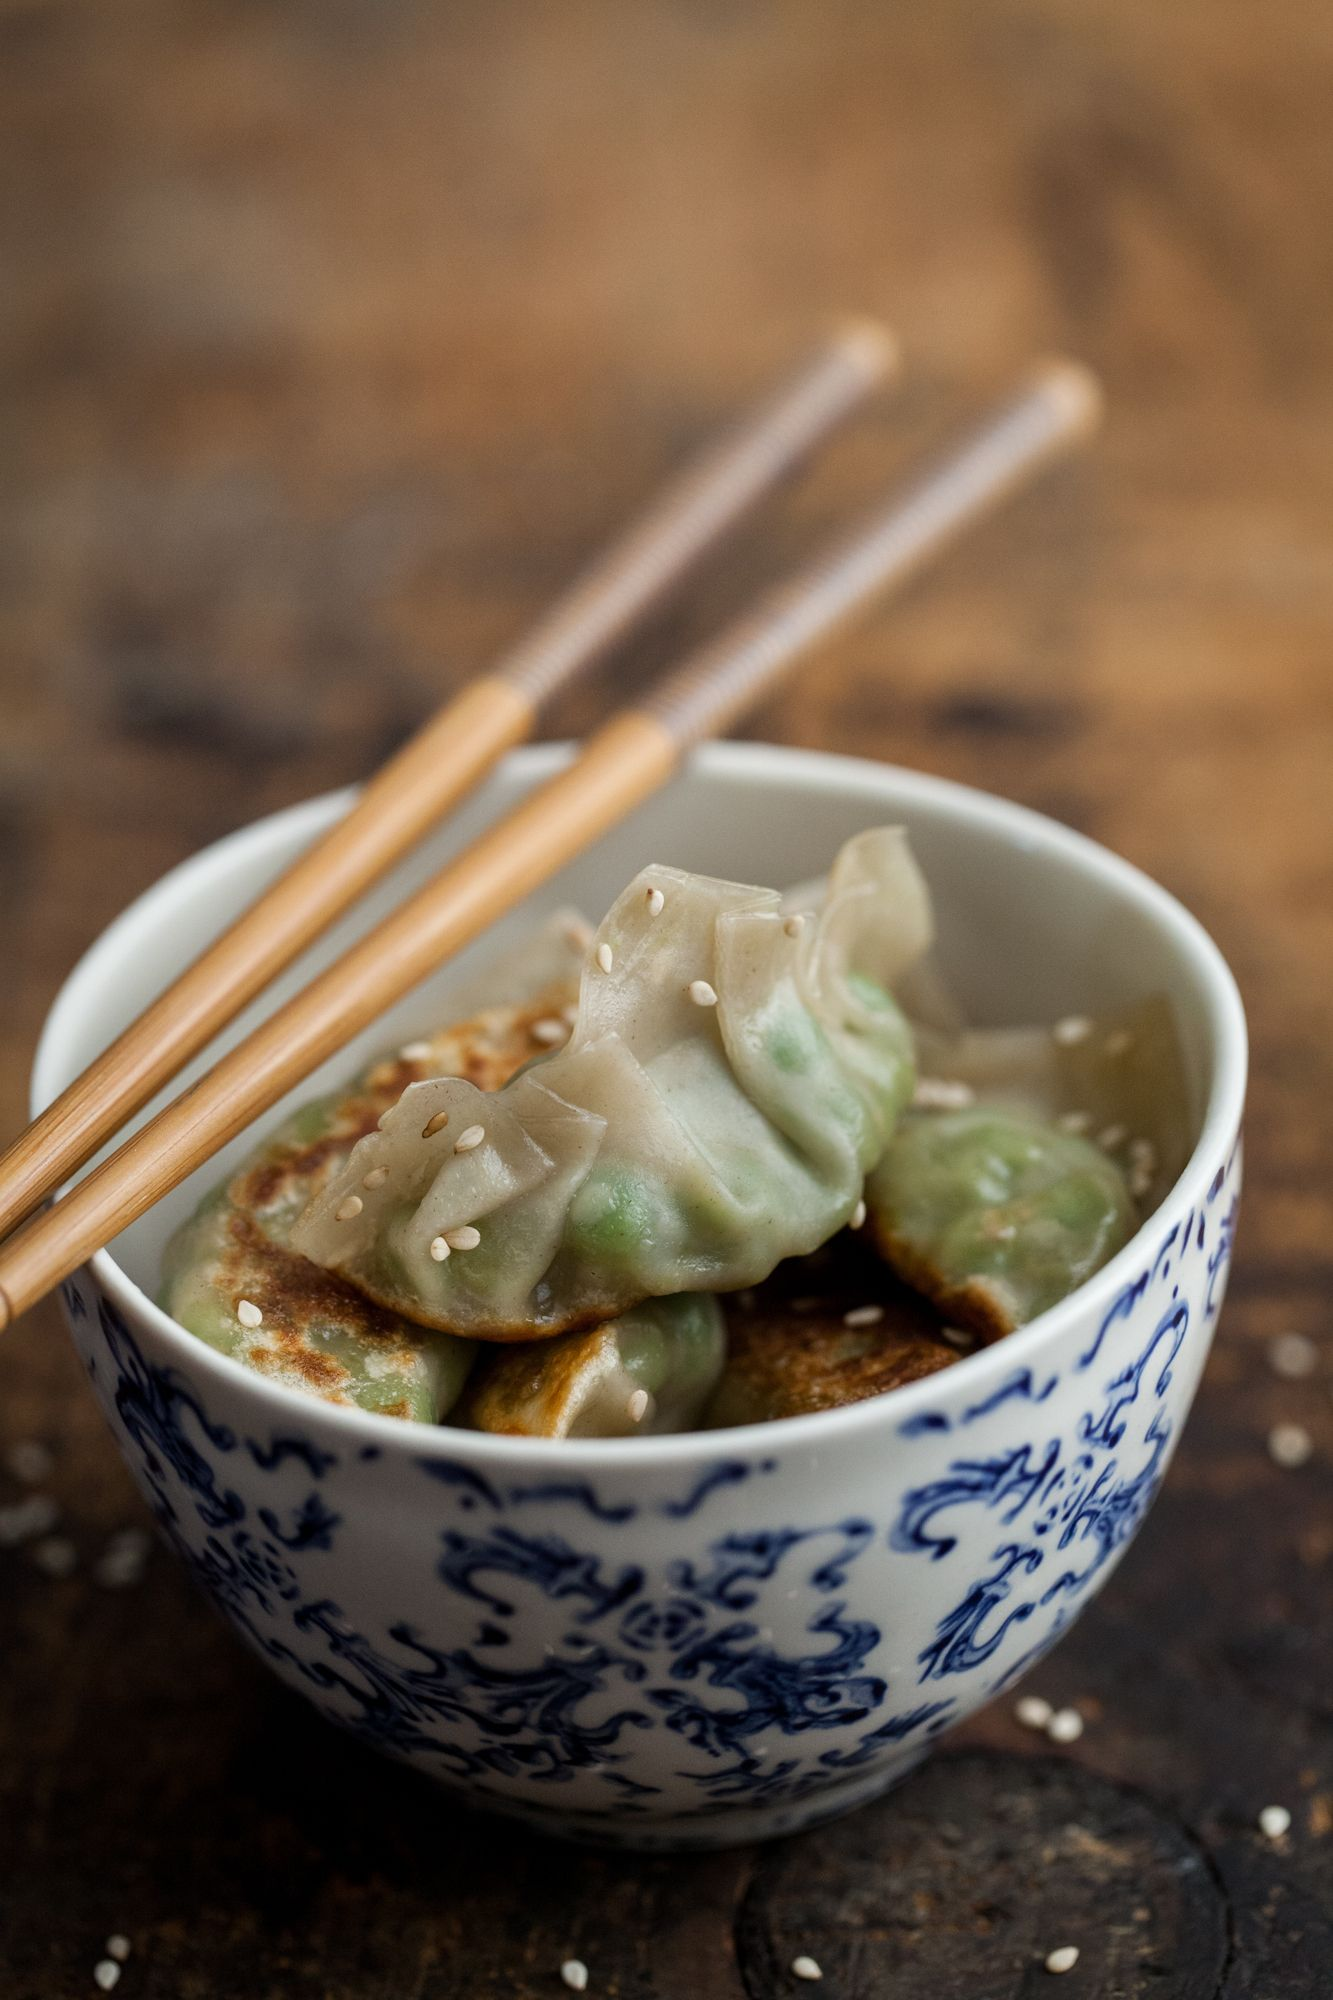 Light & Easy Weeknight Meals: Smashed Pea and Ginger Potstickers